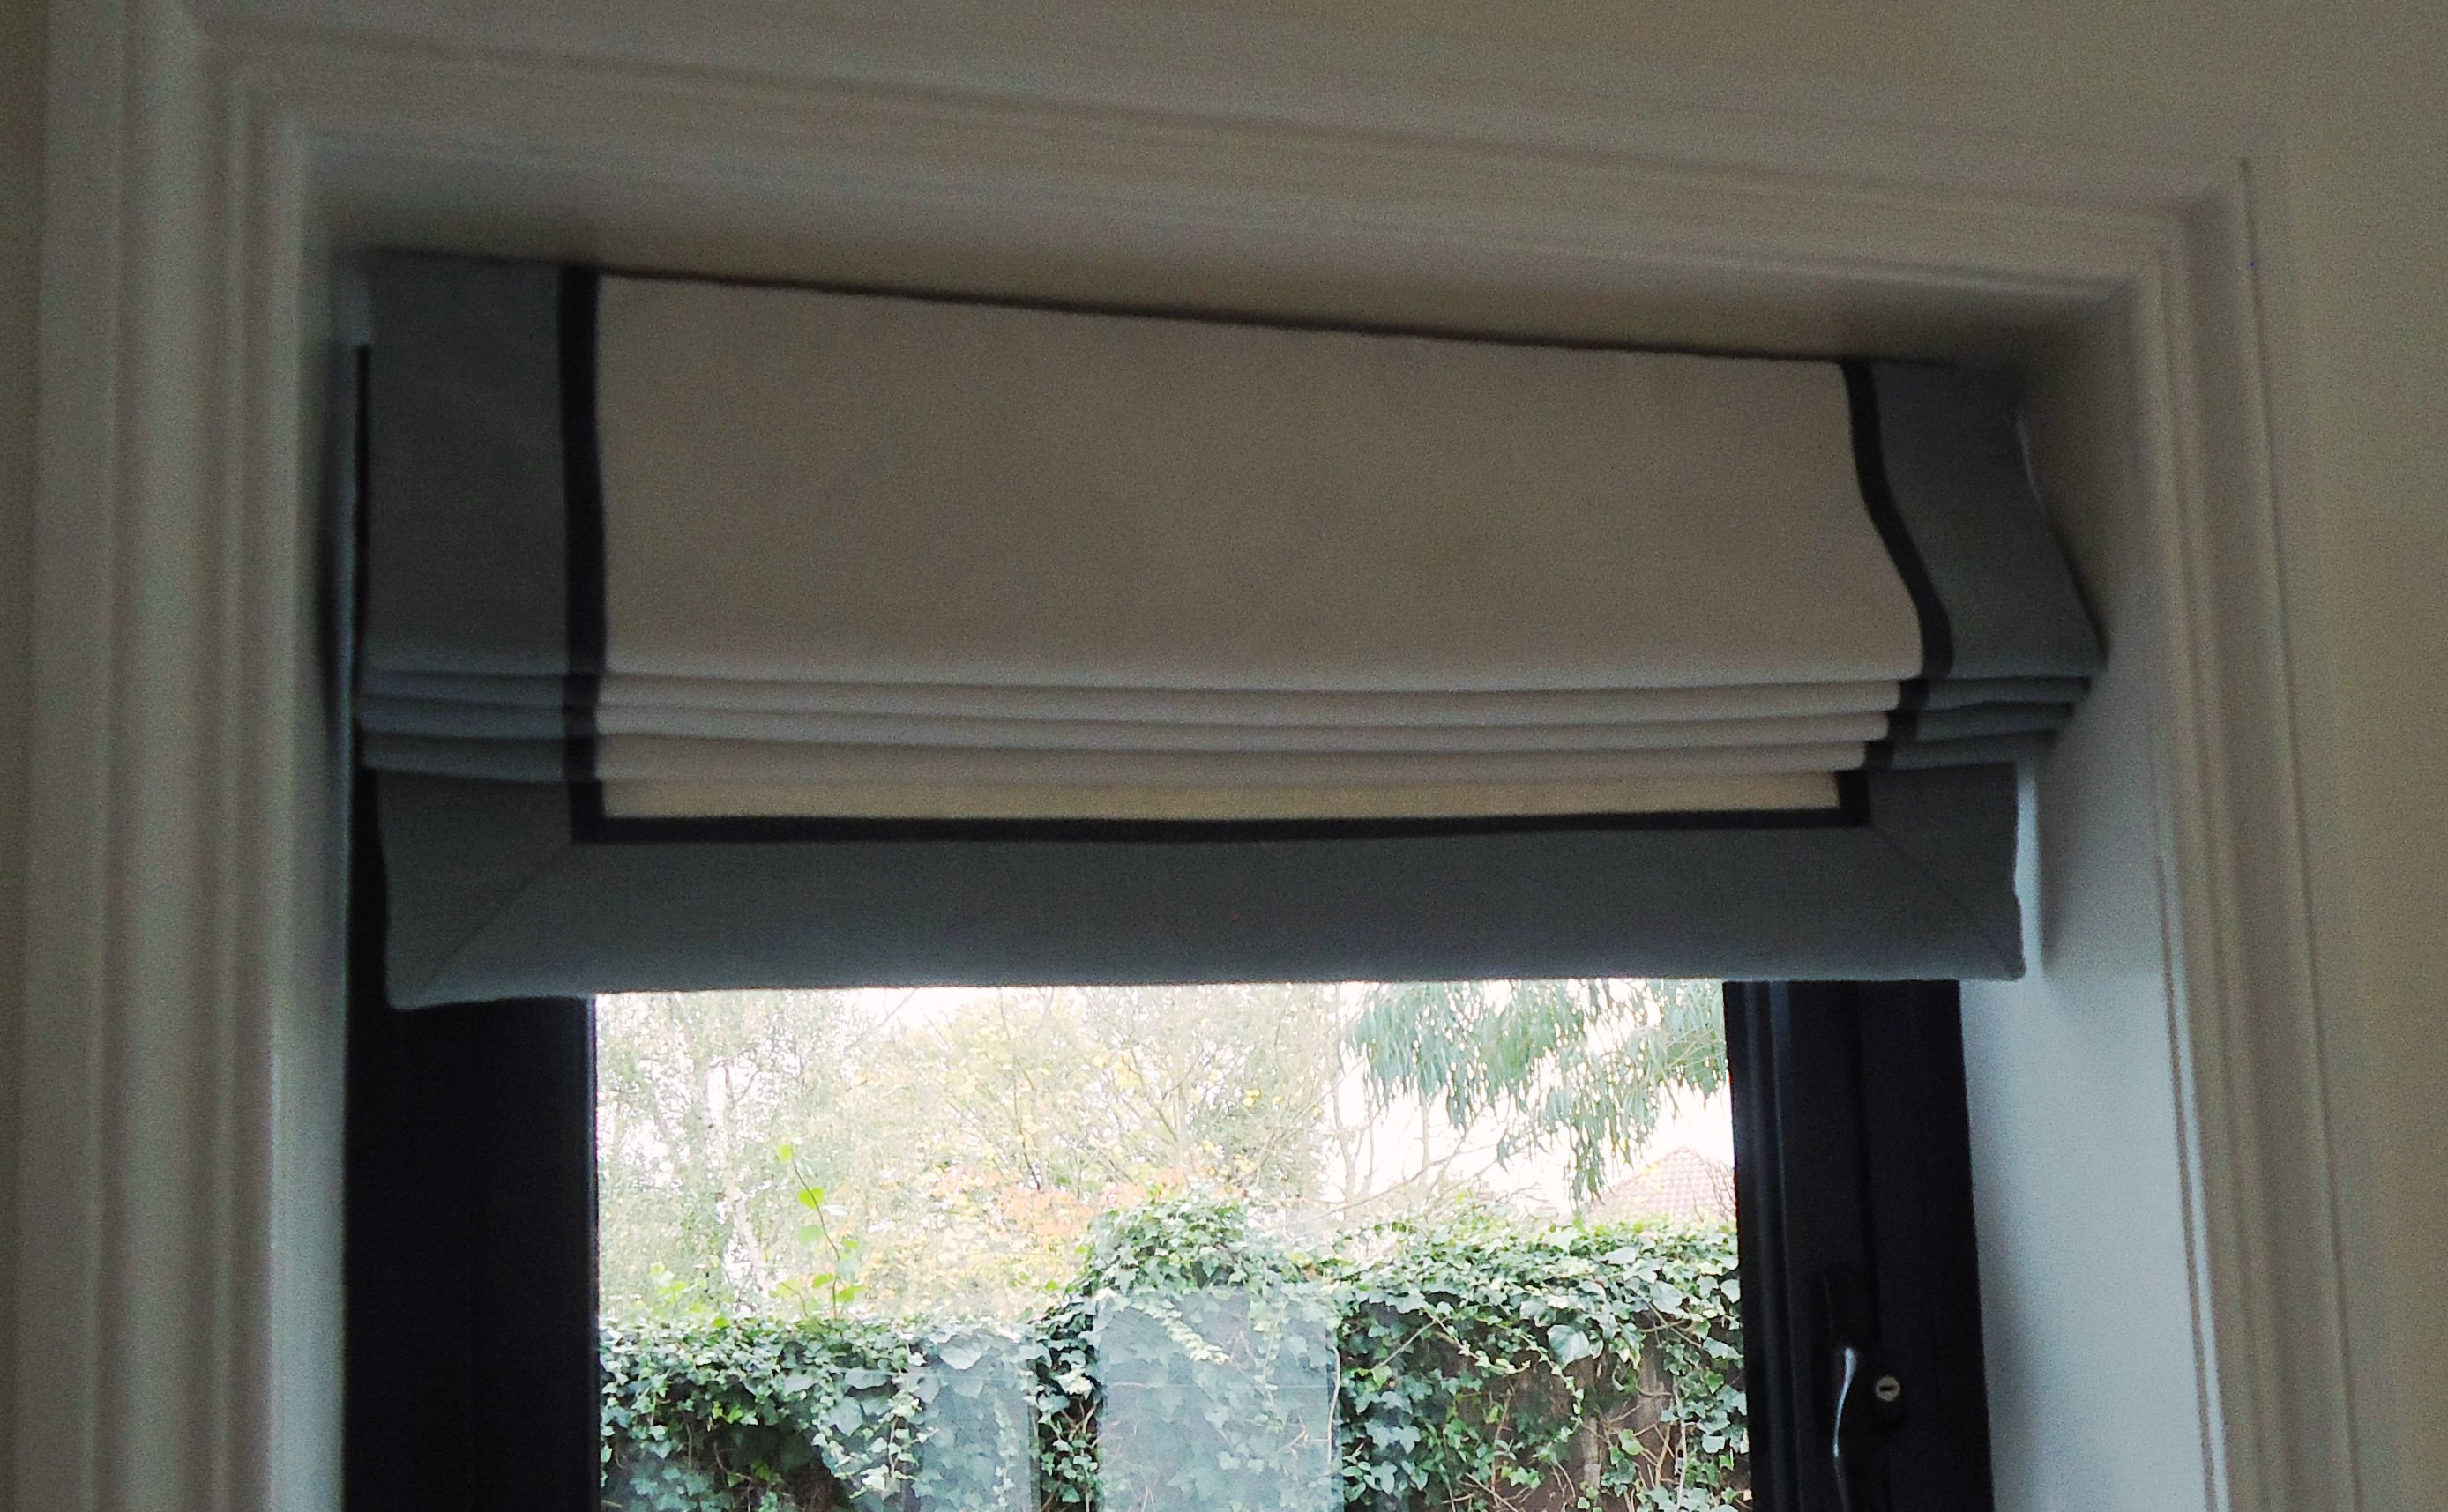 Including Contrasting Borders On A Plain Roman Blind Is A Great